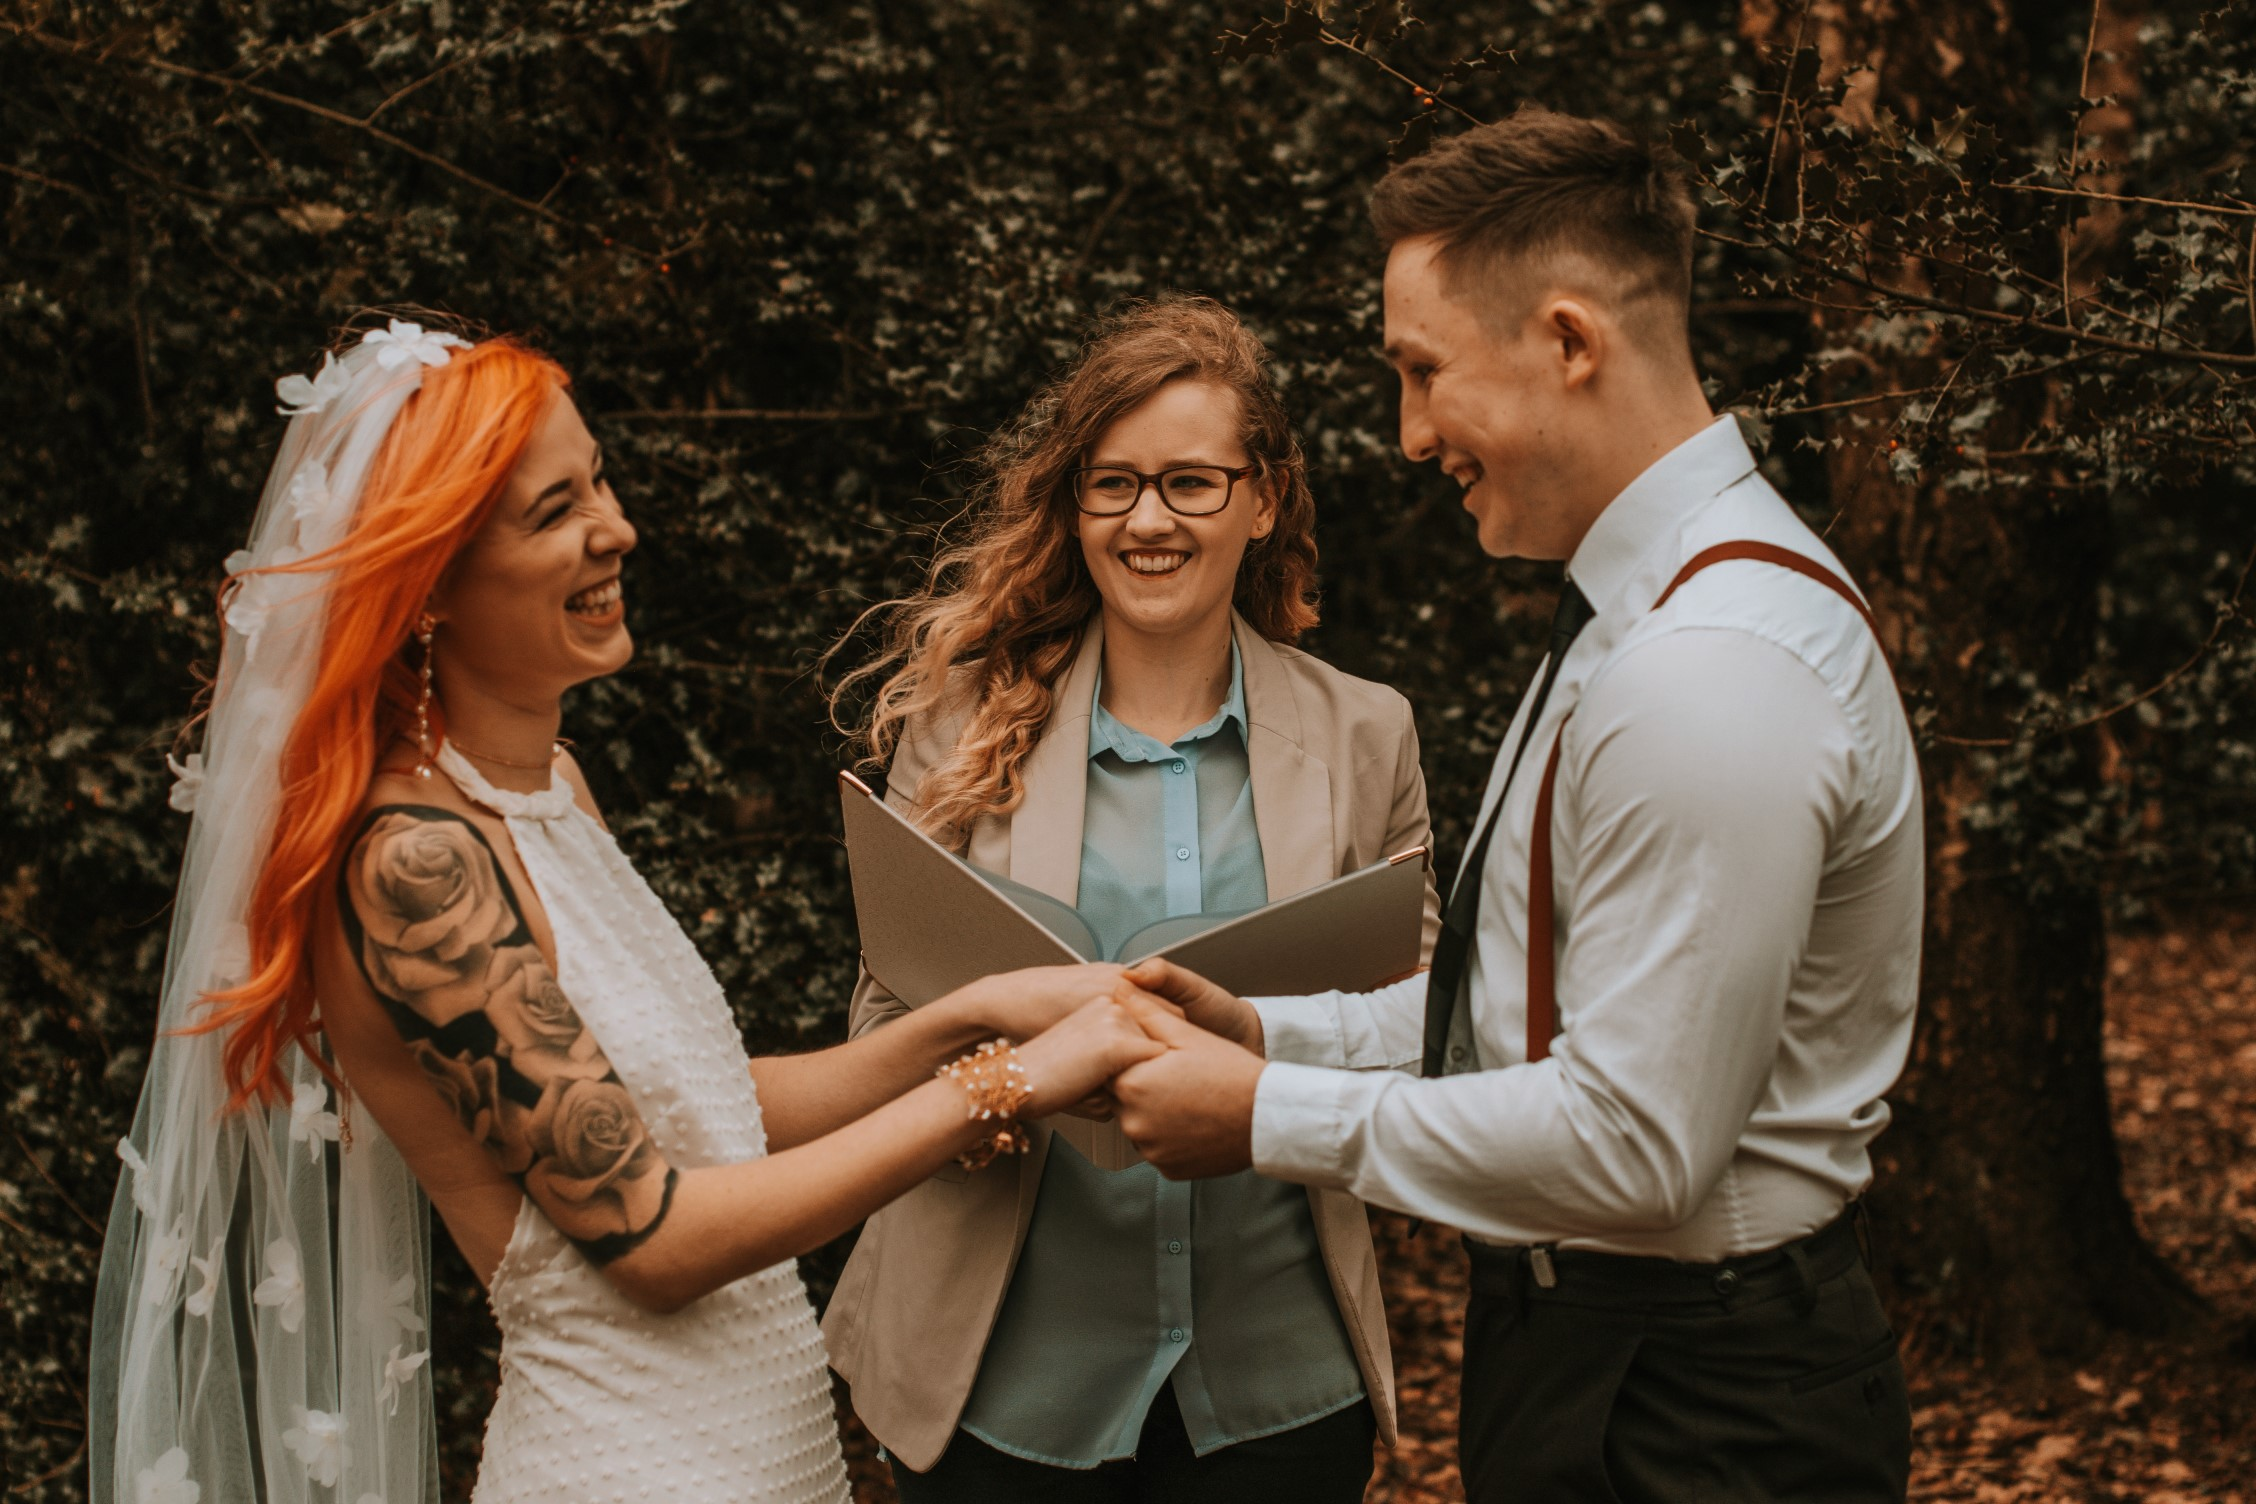 Alternative Forest Wedding -wedding celebrant- Sammy Leas Retro Emporium -Photography By Wills- alternative wedding - unconventional wedding- edgy woodland wedding-forest wedding ceremony